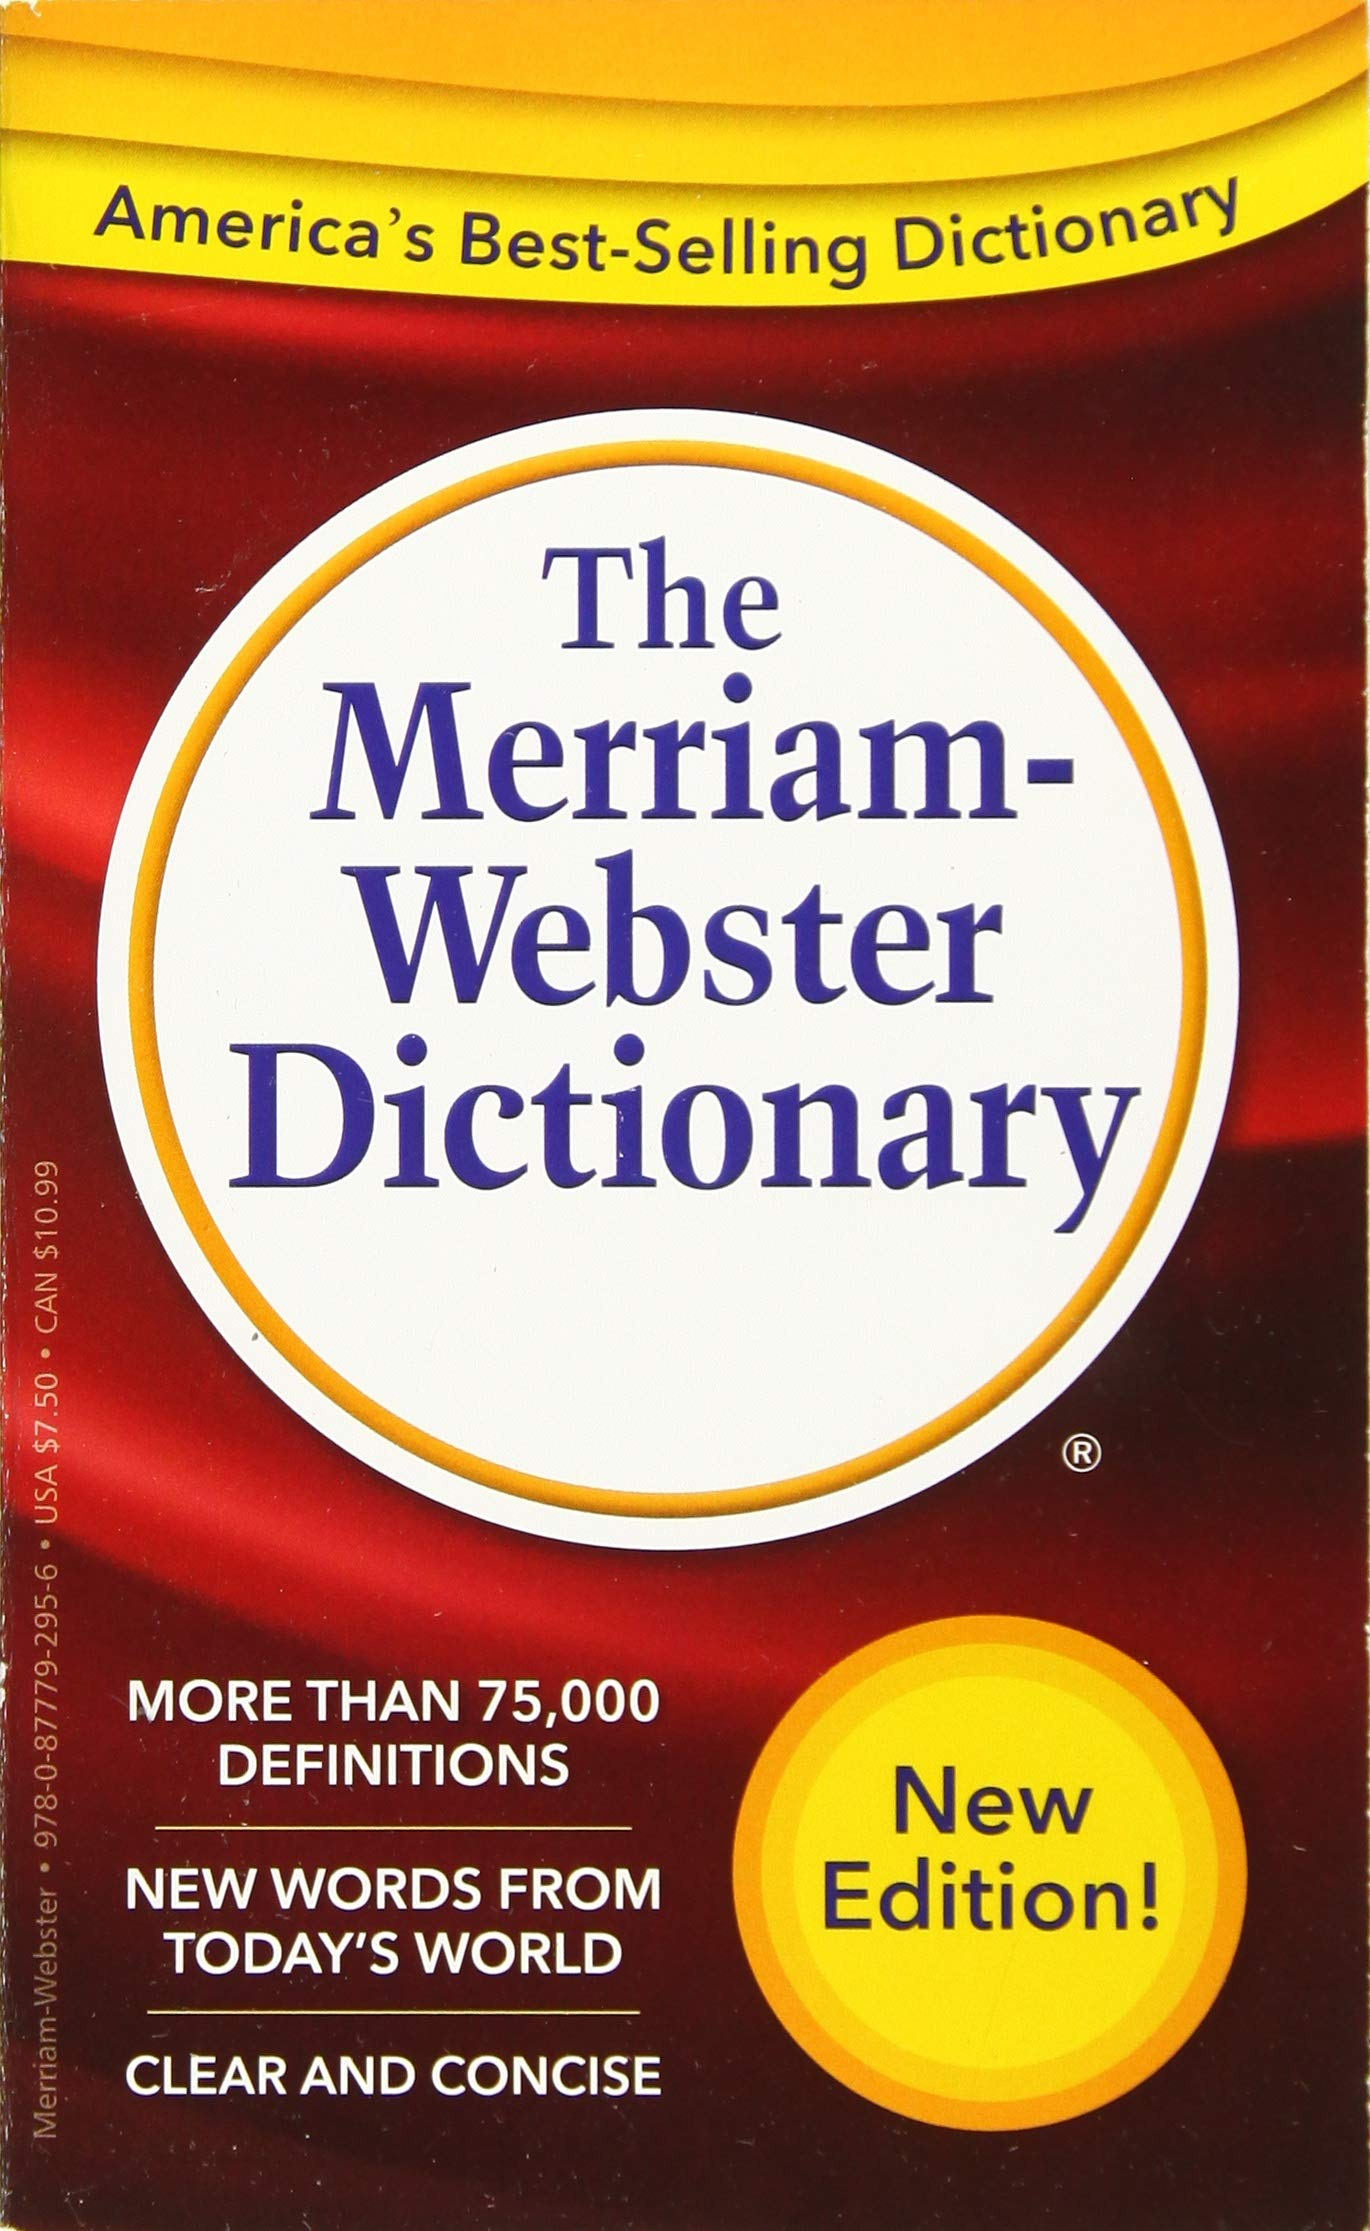 Merriam-Webster Dictionary ...